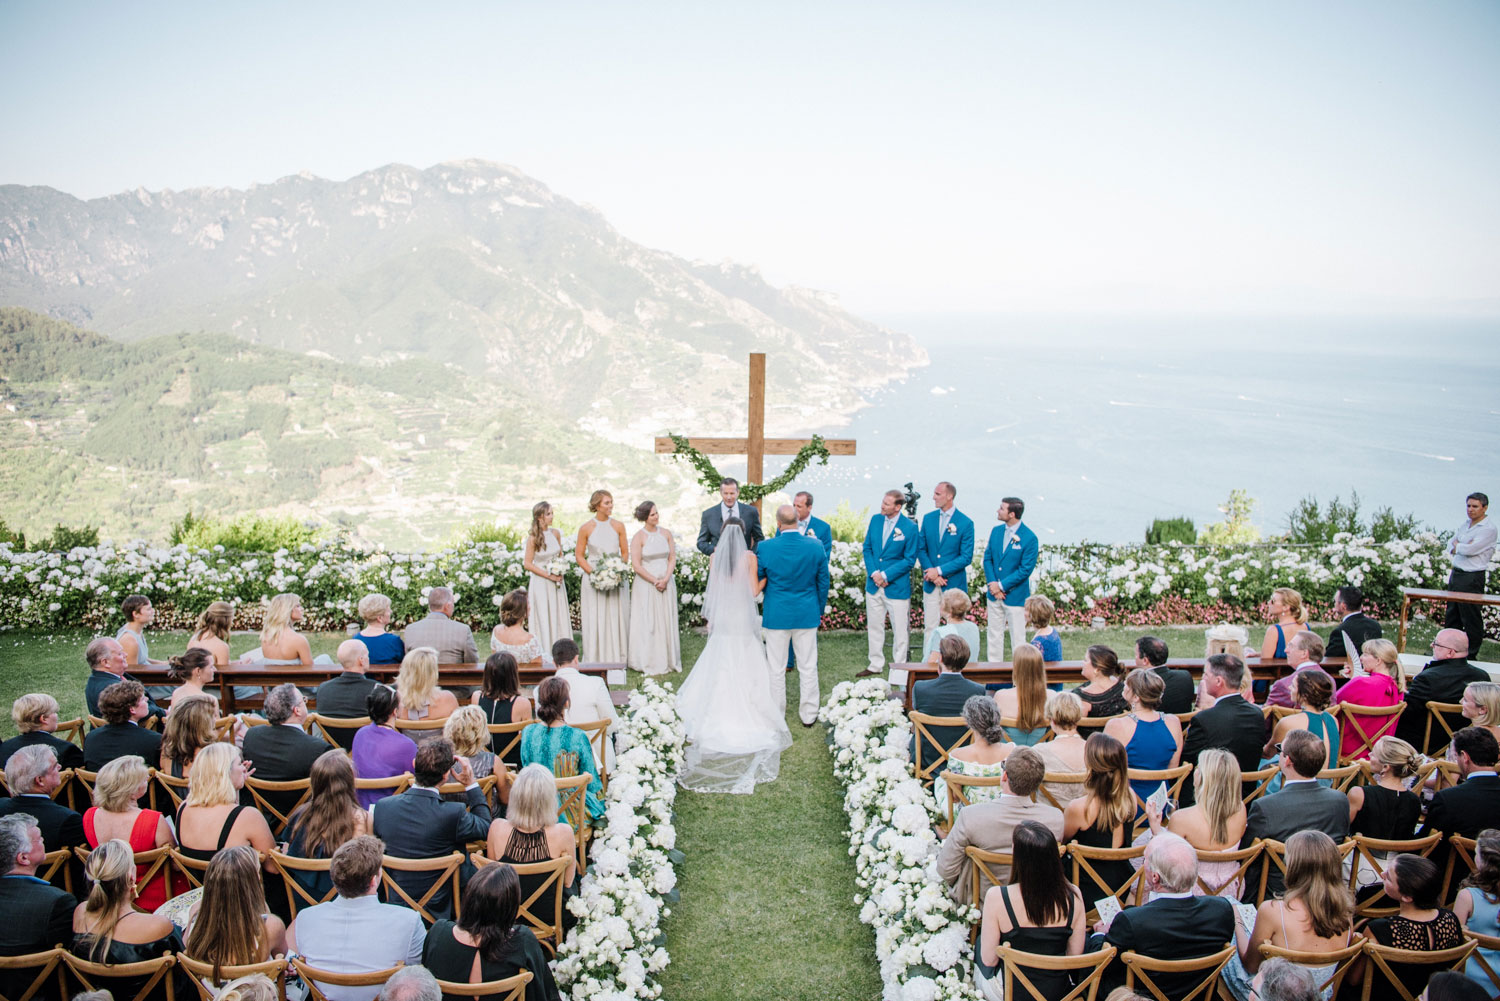 popular real wedding inside weddings outdoor destination wedding ceremony amalfi coast italy